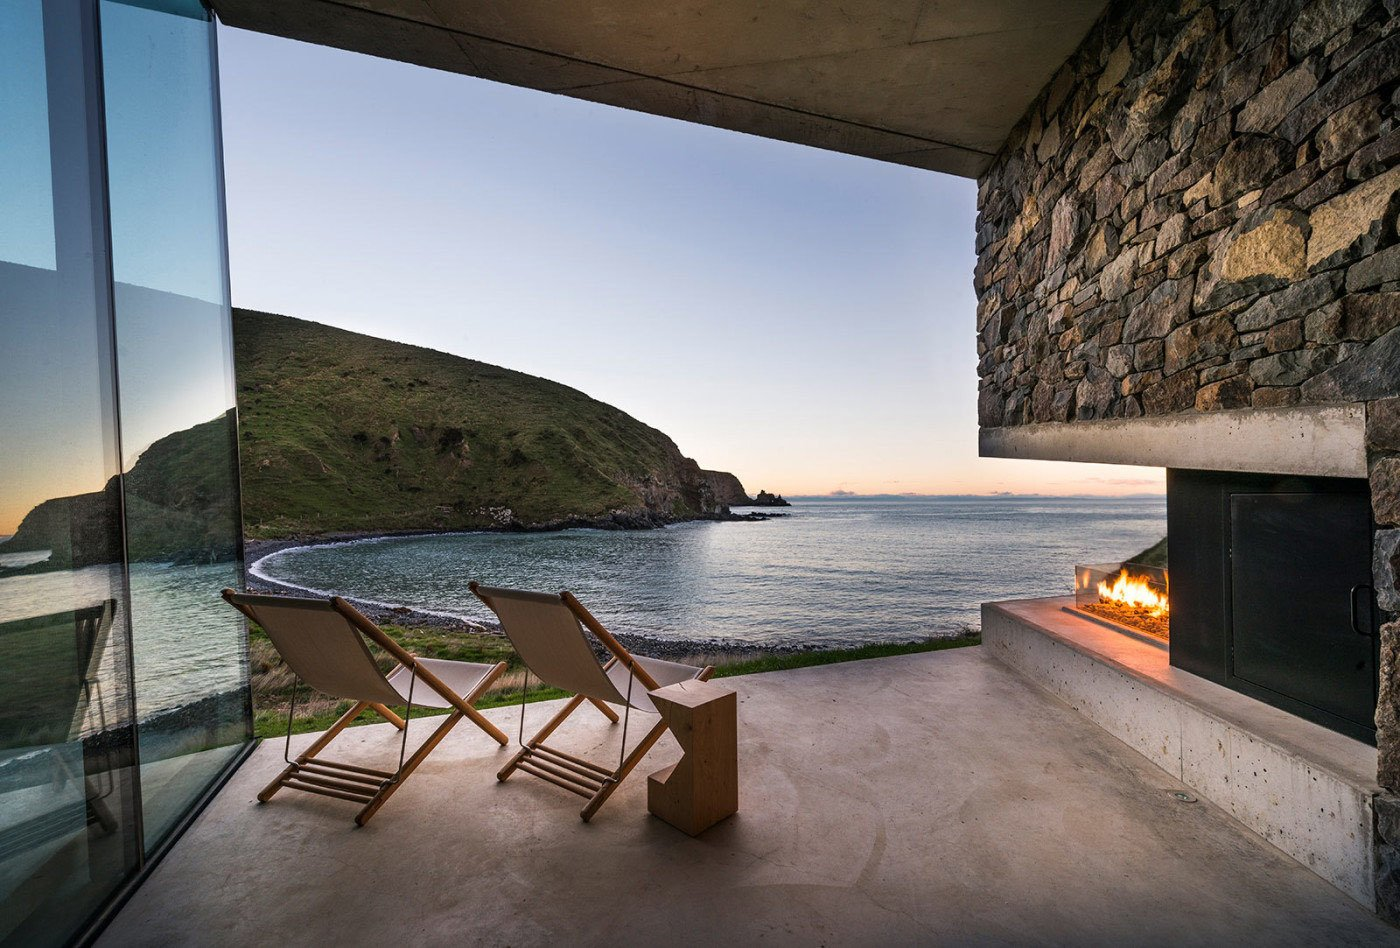 The Seascape Retreat is an Exemplary Romantic Getaway